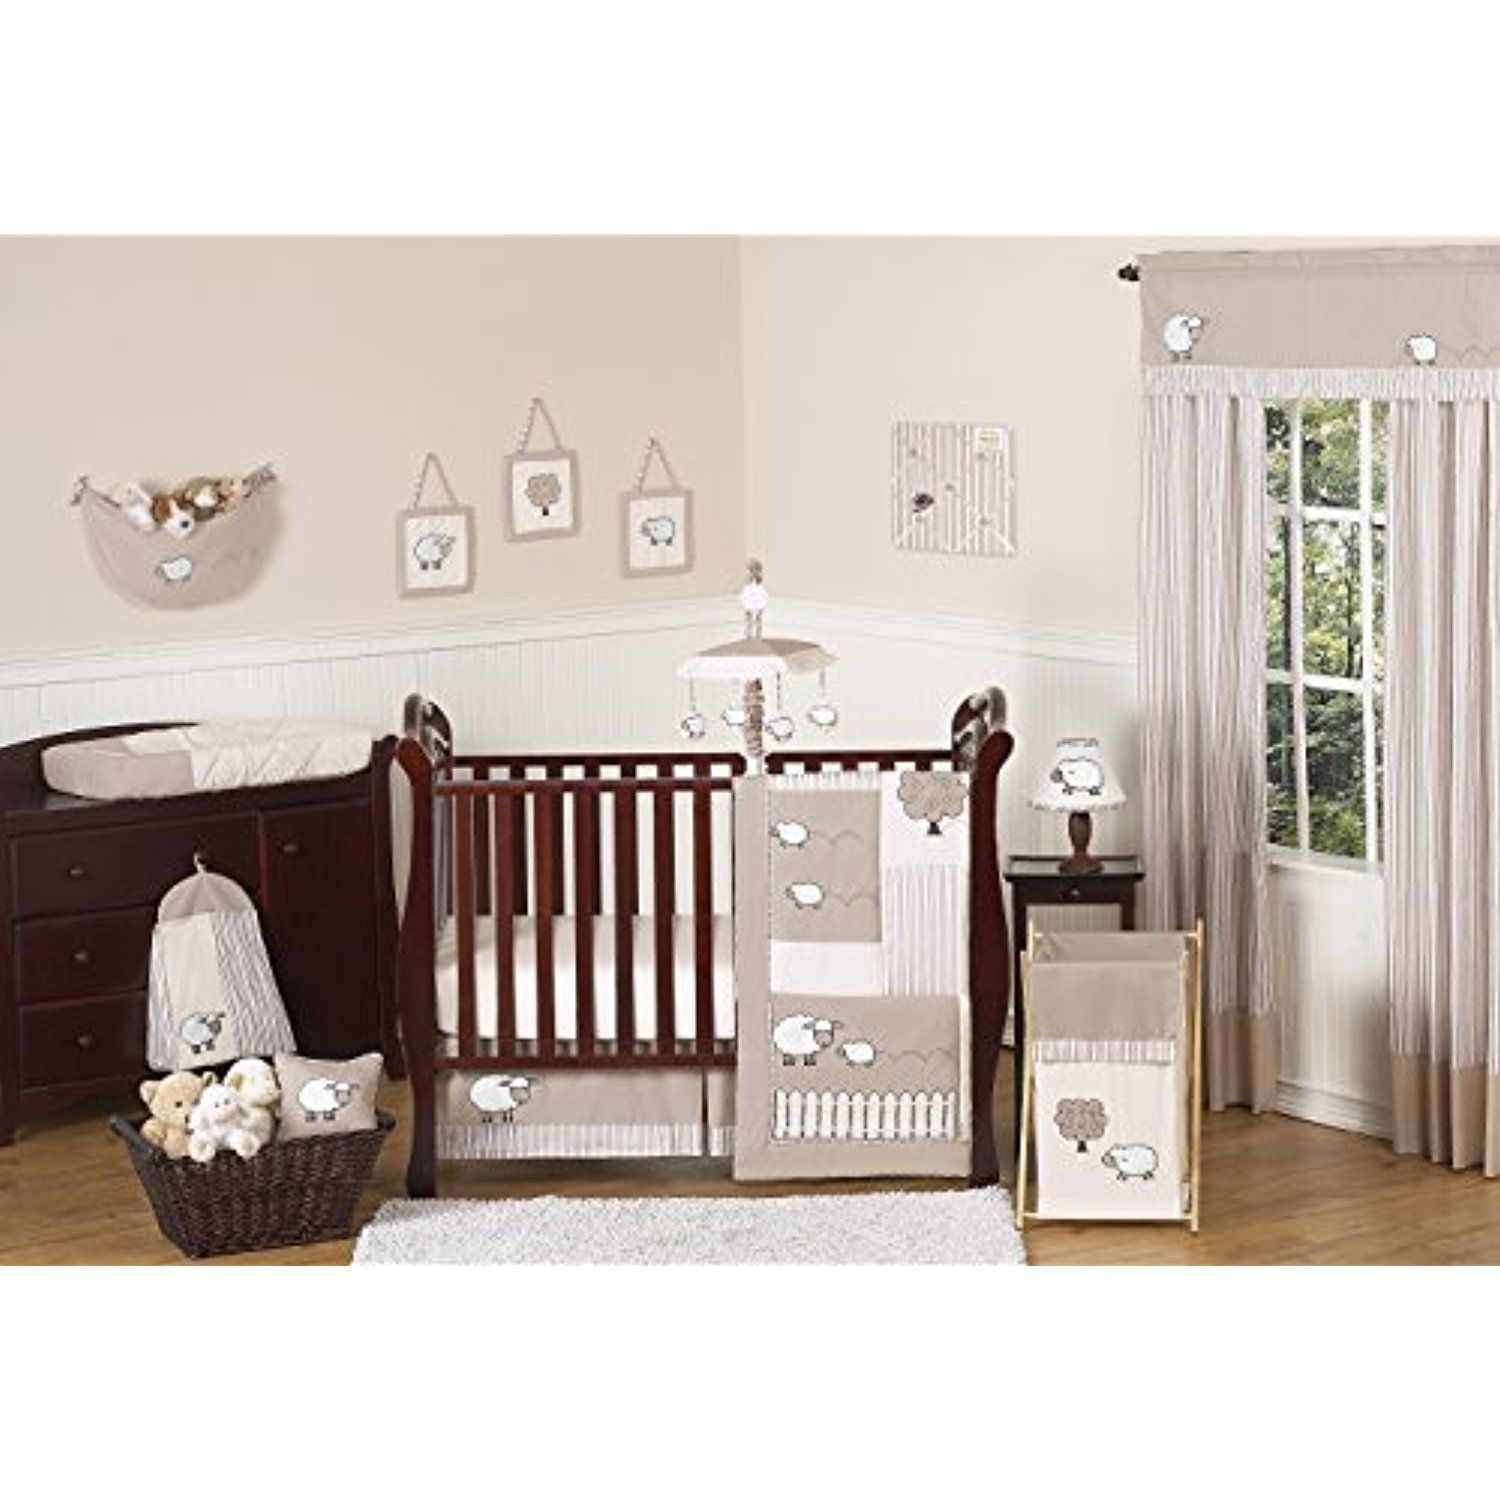 toddler size comforter sears for bed in comforters full kids baby cribs a bag boy bedding boys of crib sets target